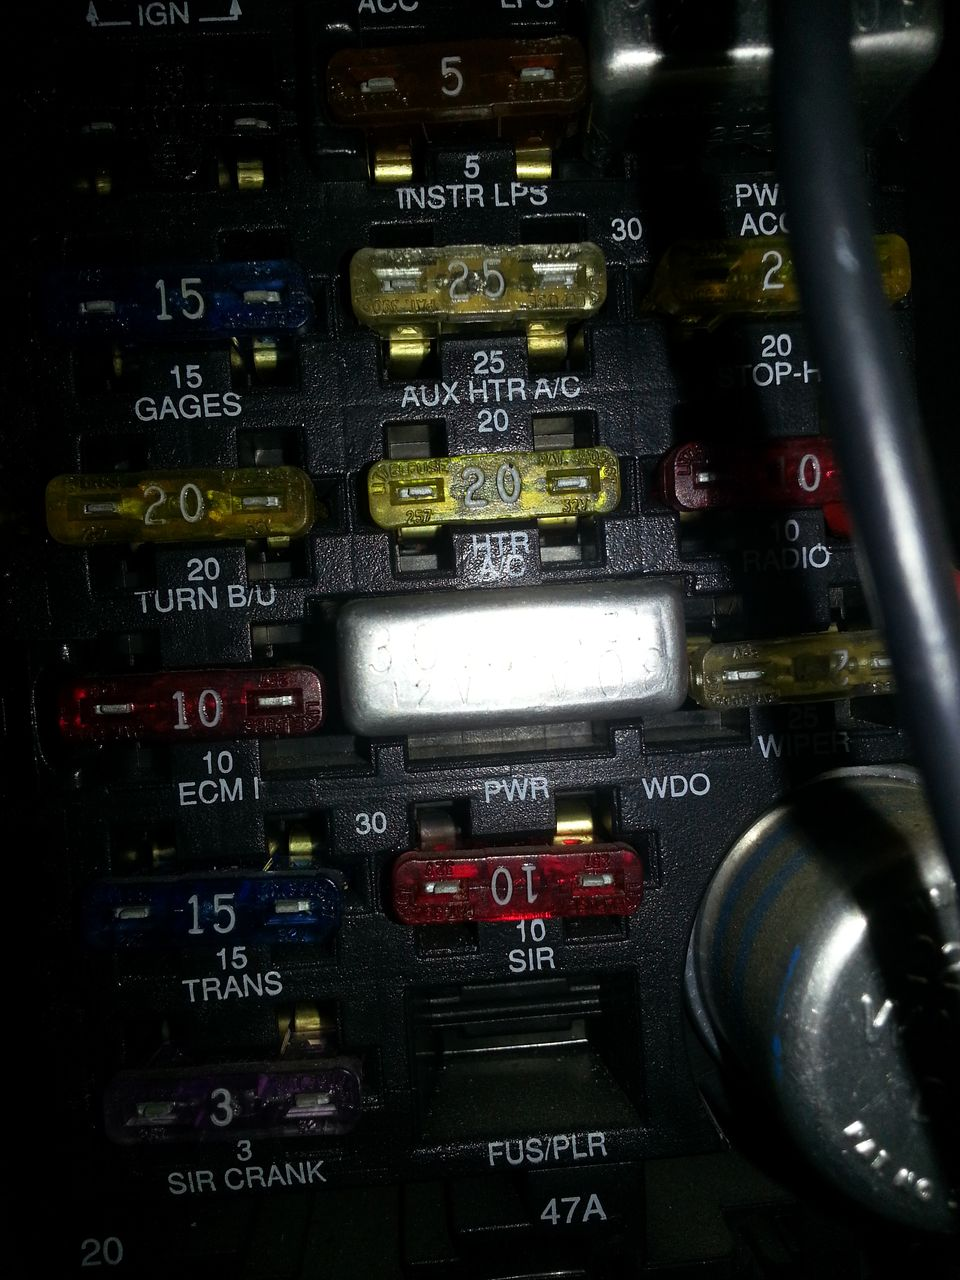 WRG-1757] Infiniti G37 Fuse Box Location on